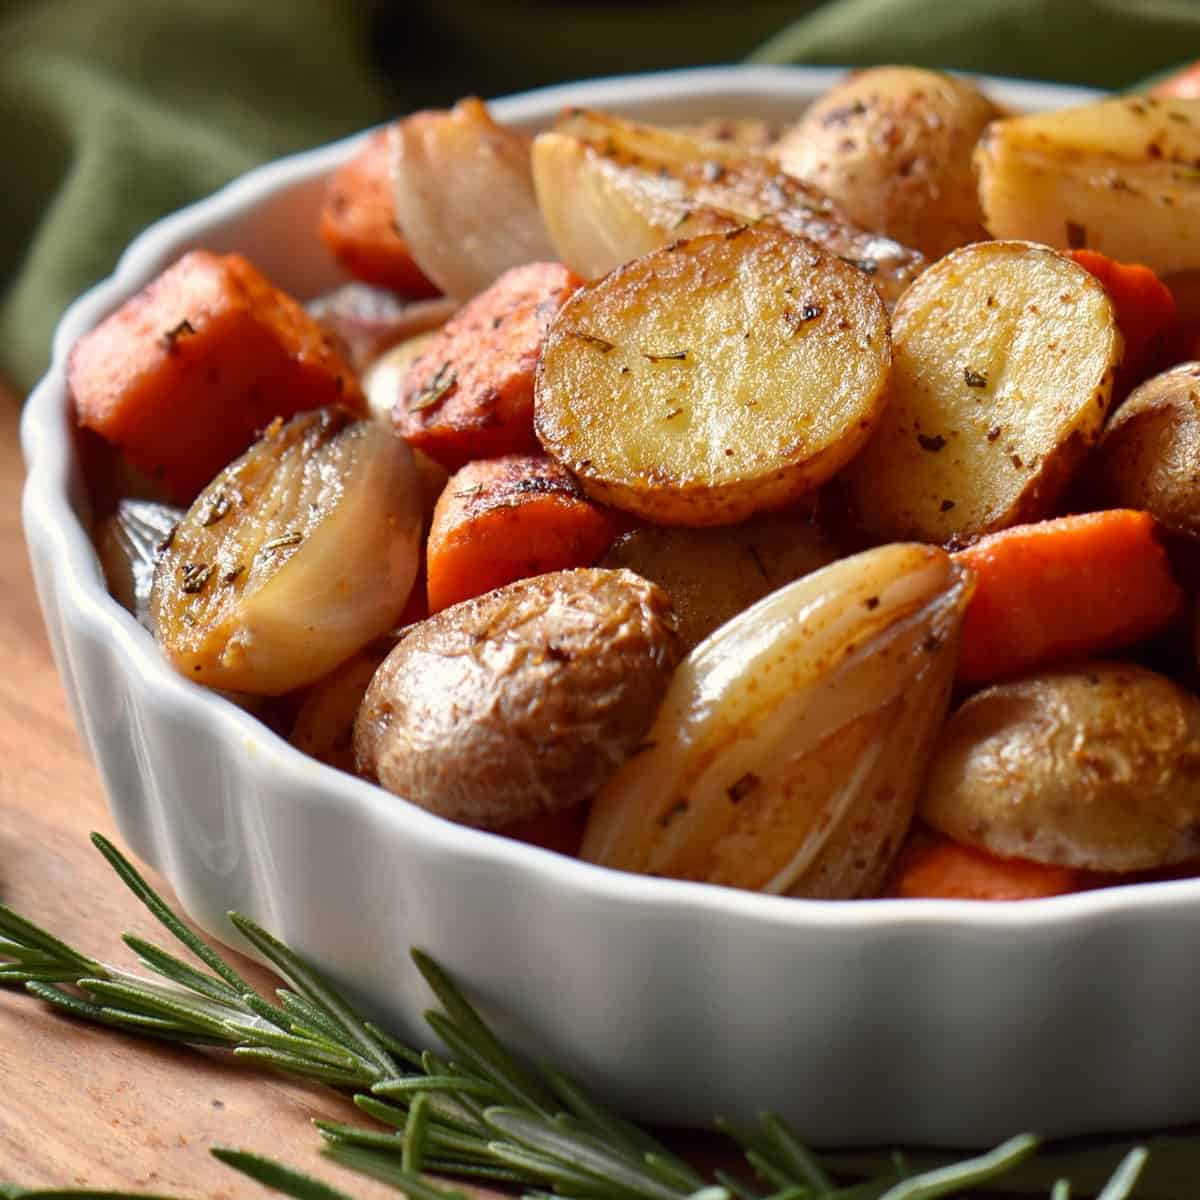 Oven roasted small potatoes and carrots in a white dish.